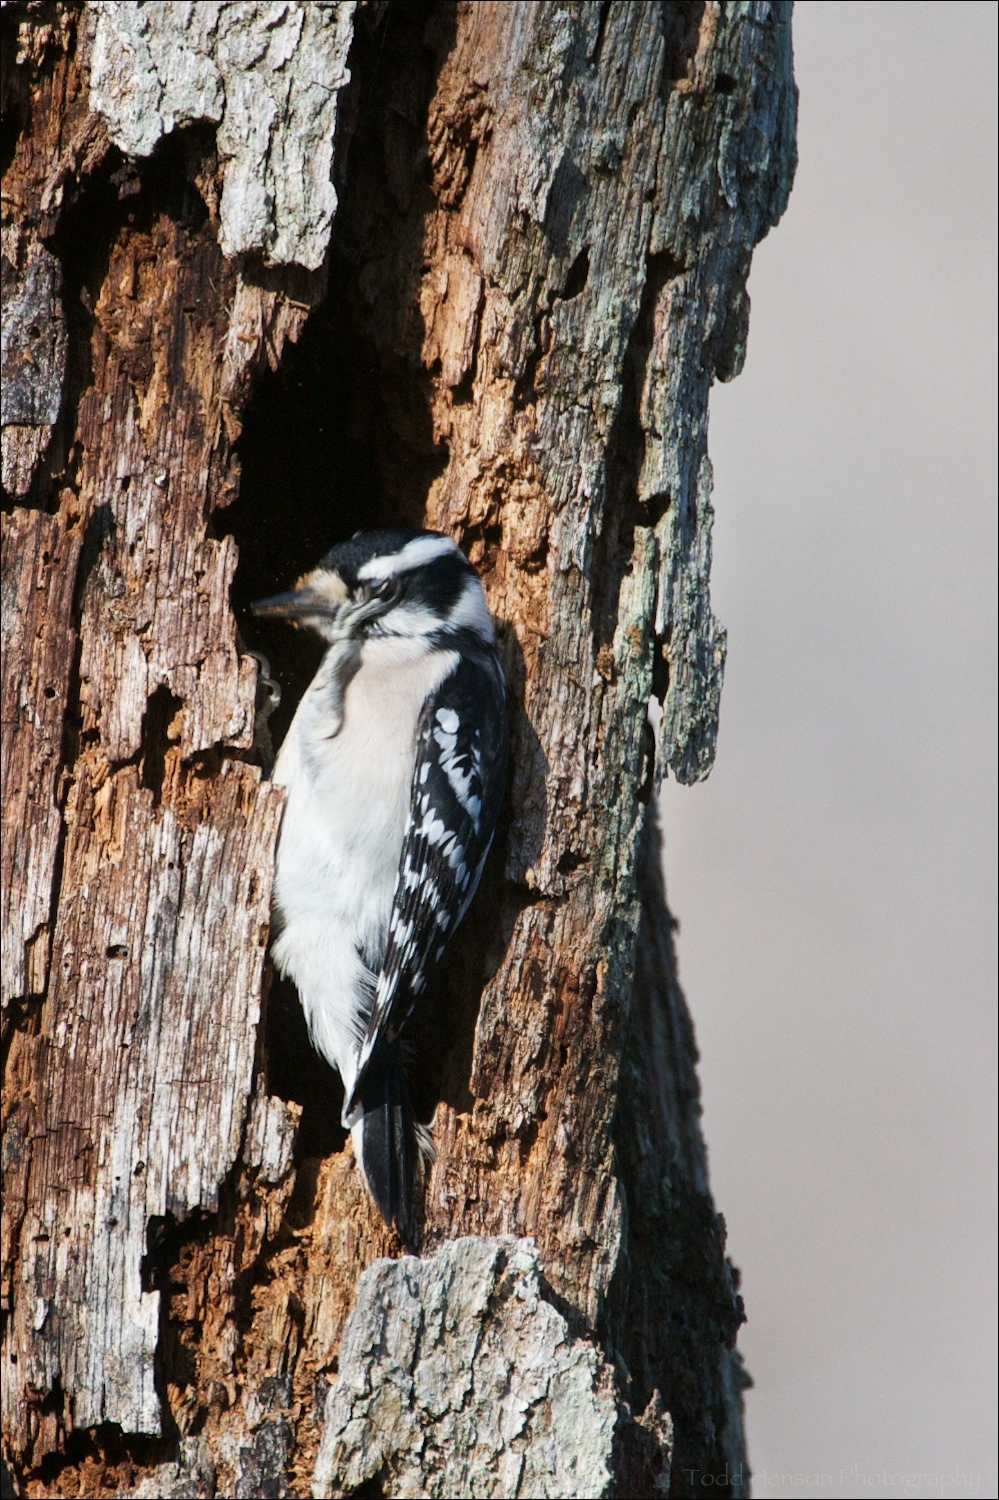 Female Downy Woodpecker scratching around her eye